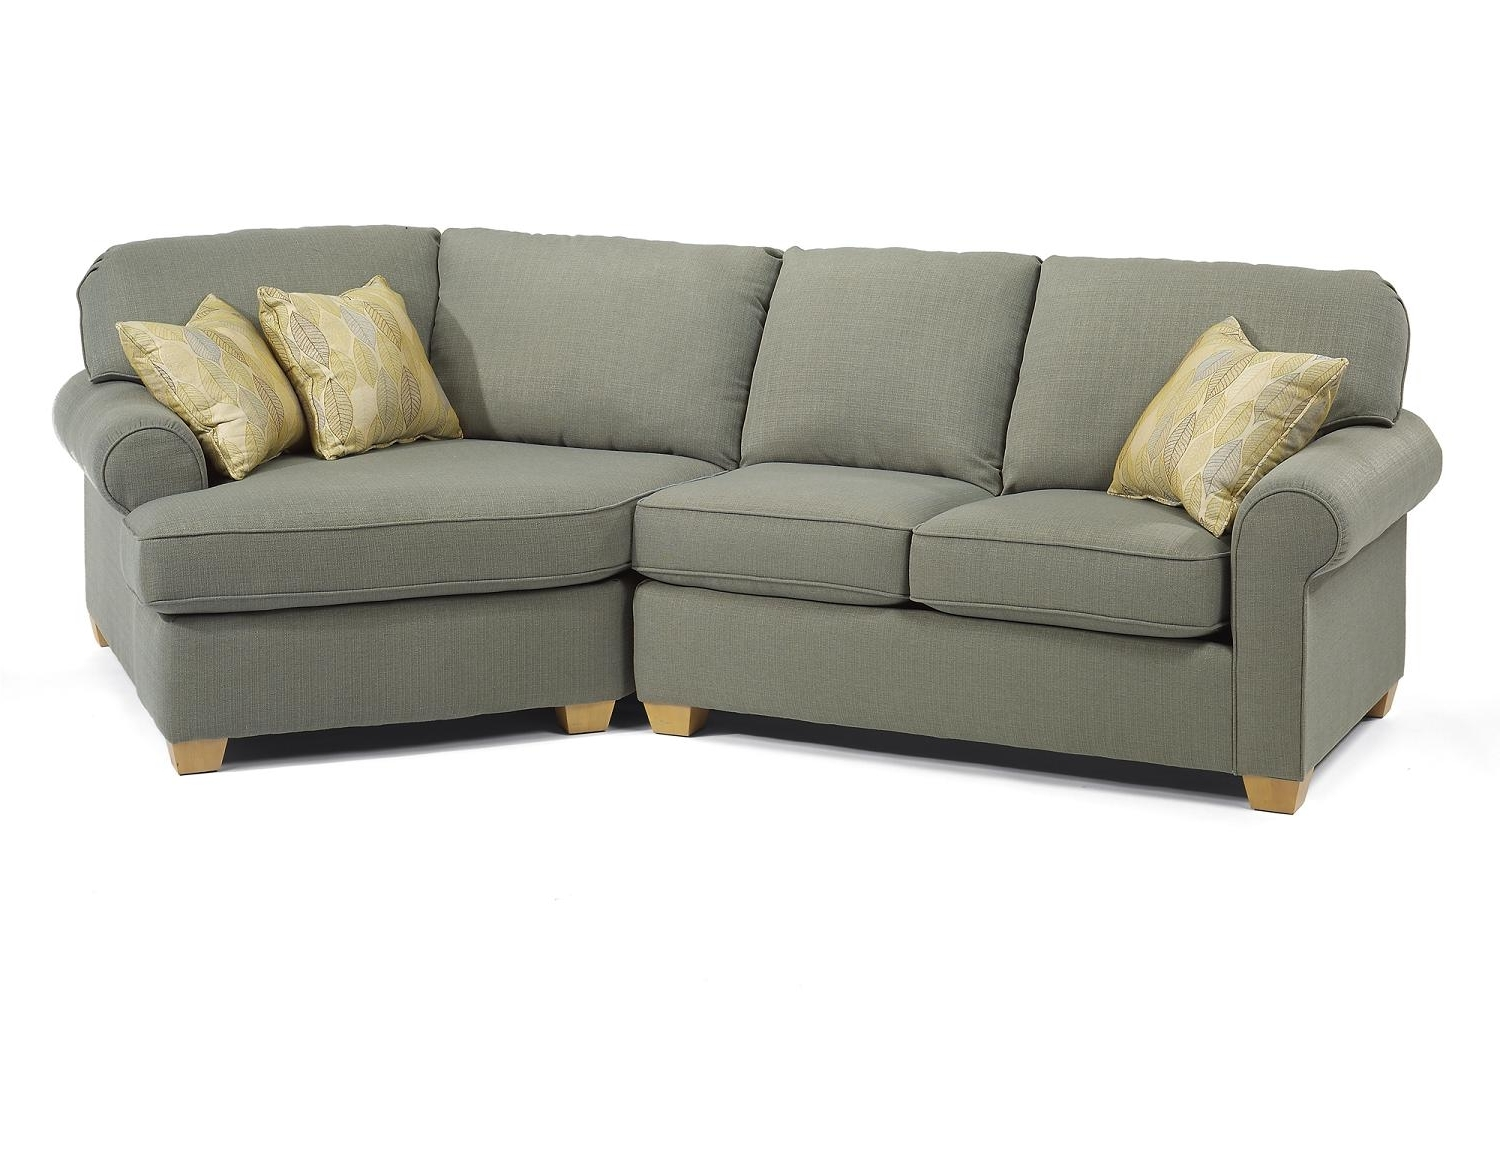 Angled Chaise Sofas Intended For Fashionable Angled Chaise Sofa – Plymouth Furniture (View 1 of 15)